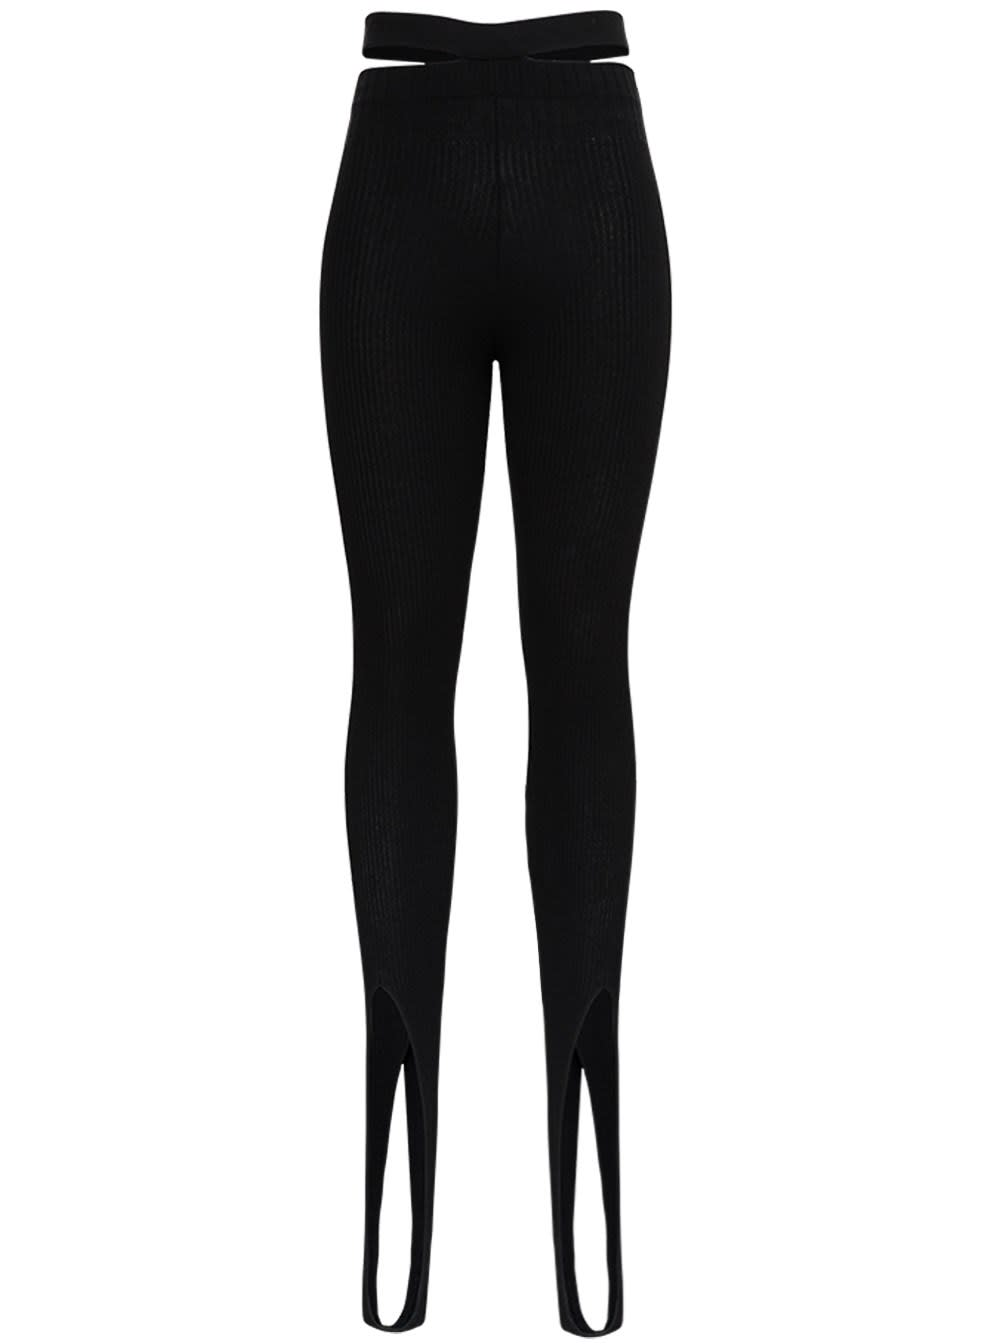 Ribbed Knit Leggings With Cut Out Details